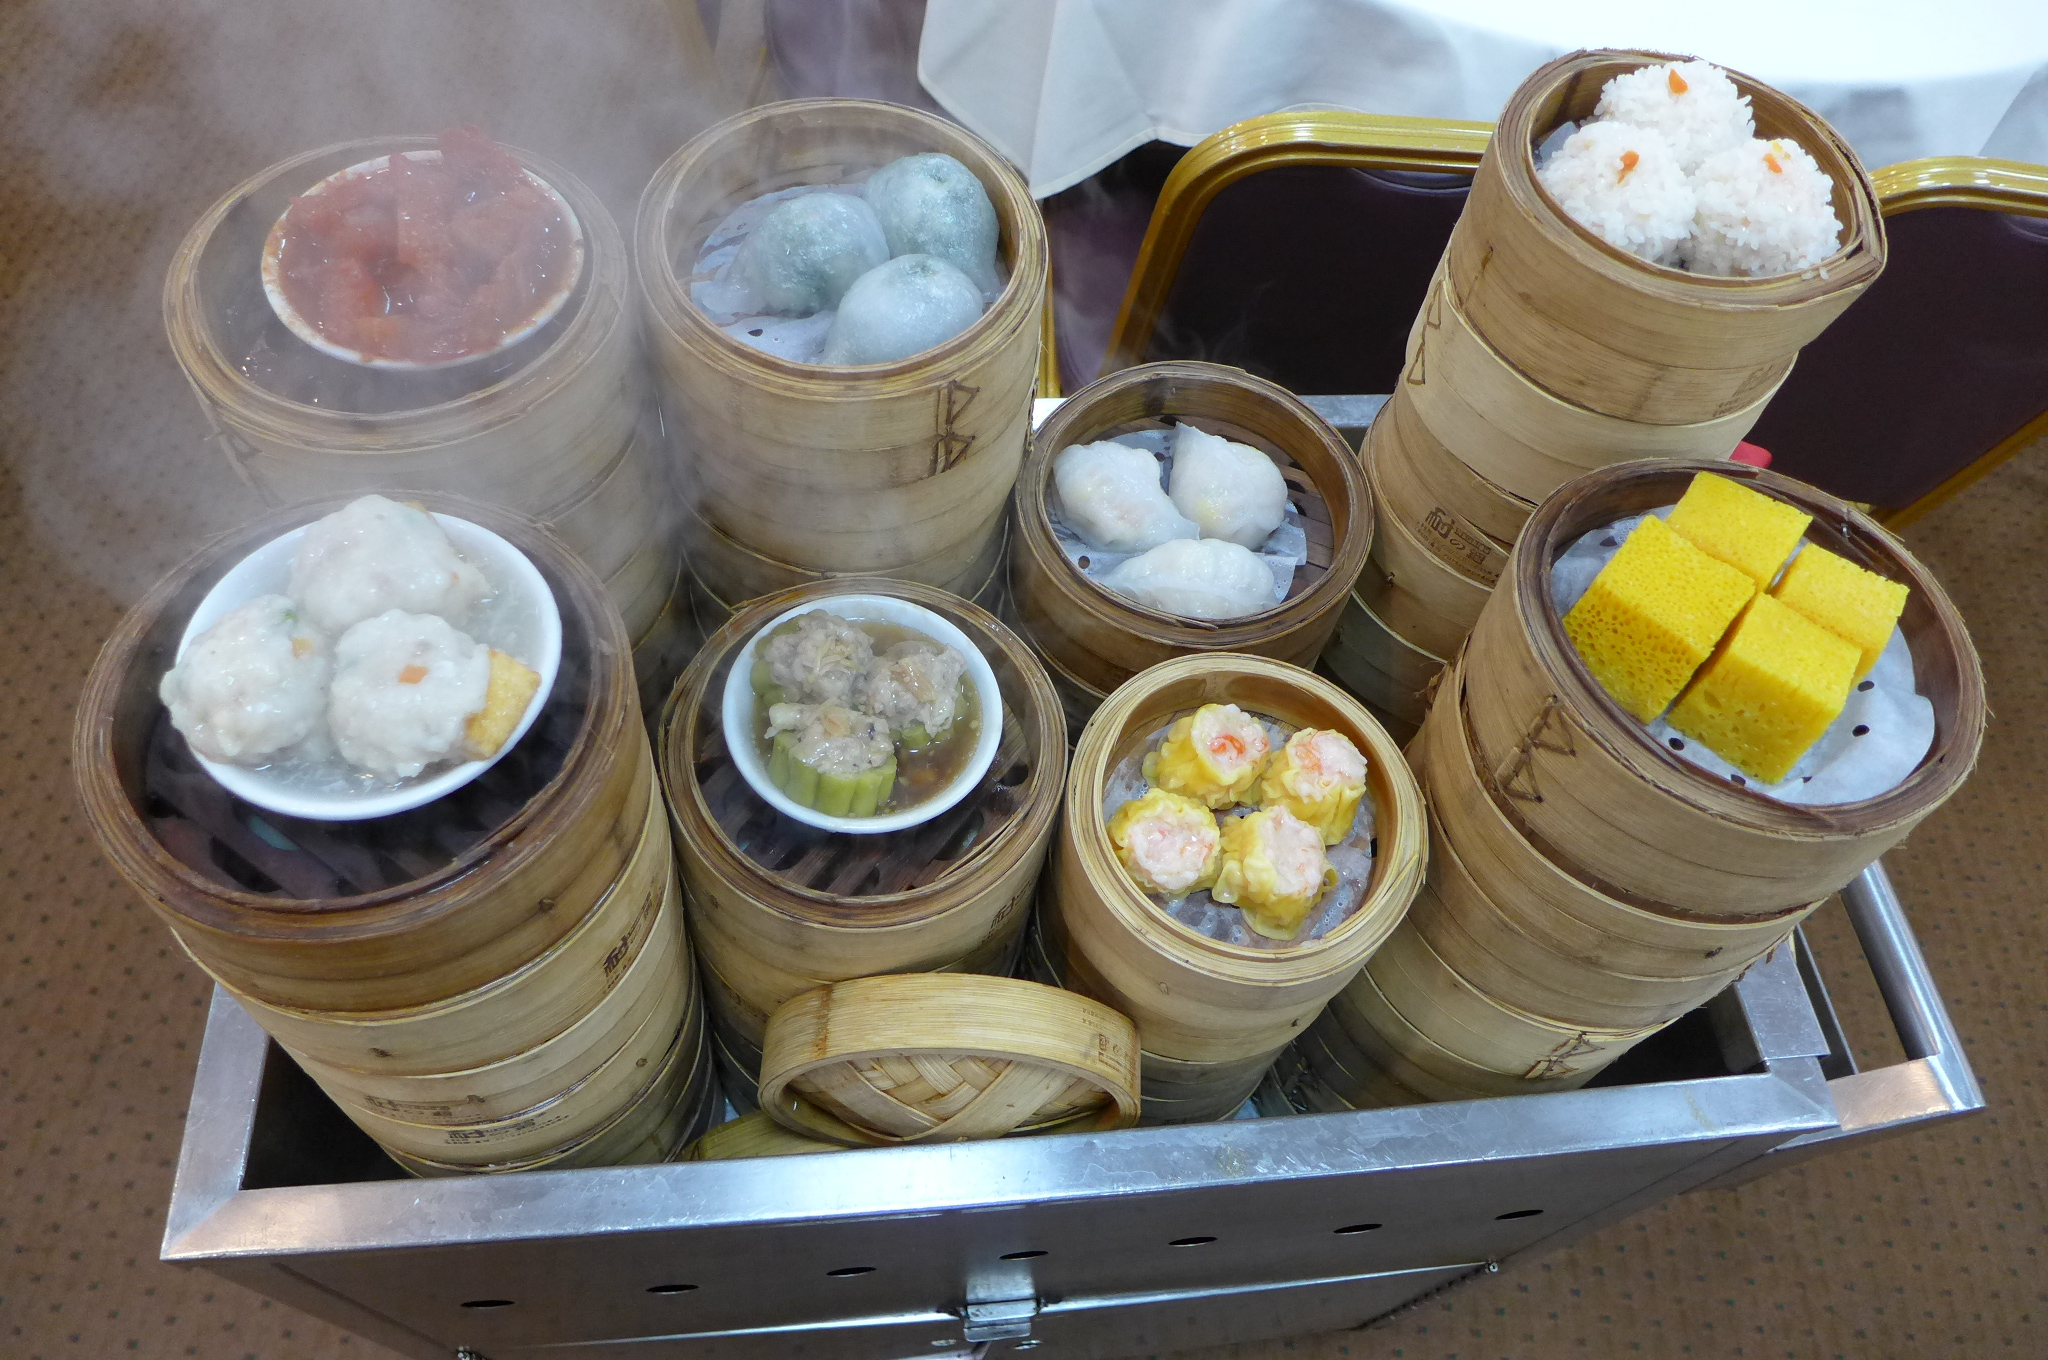 Where's the Best Dim Sum?